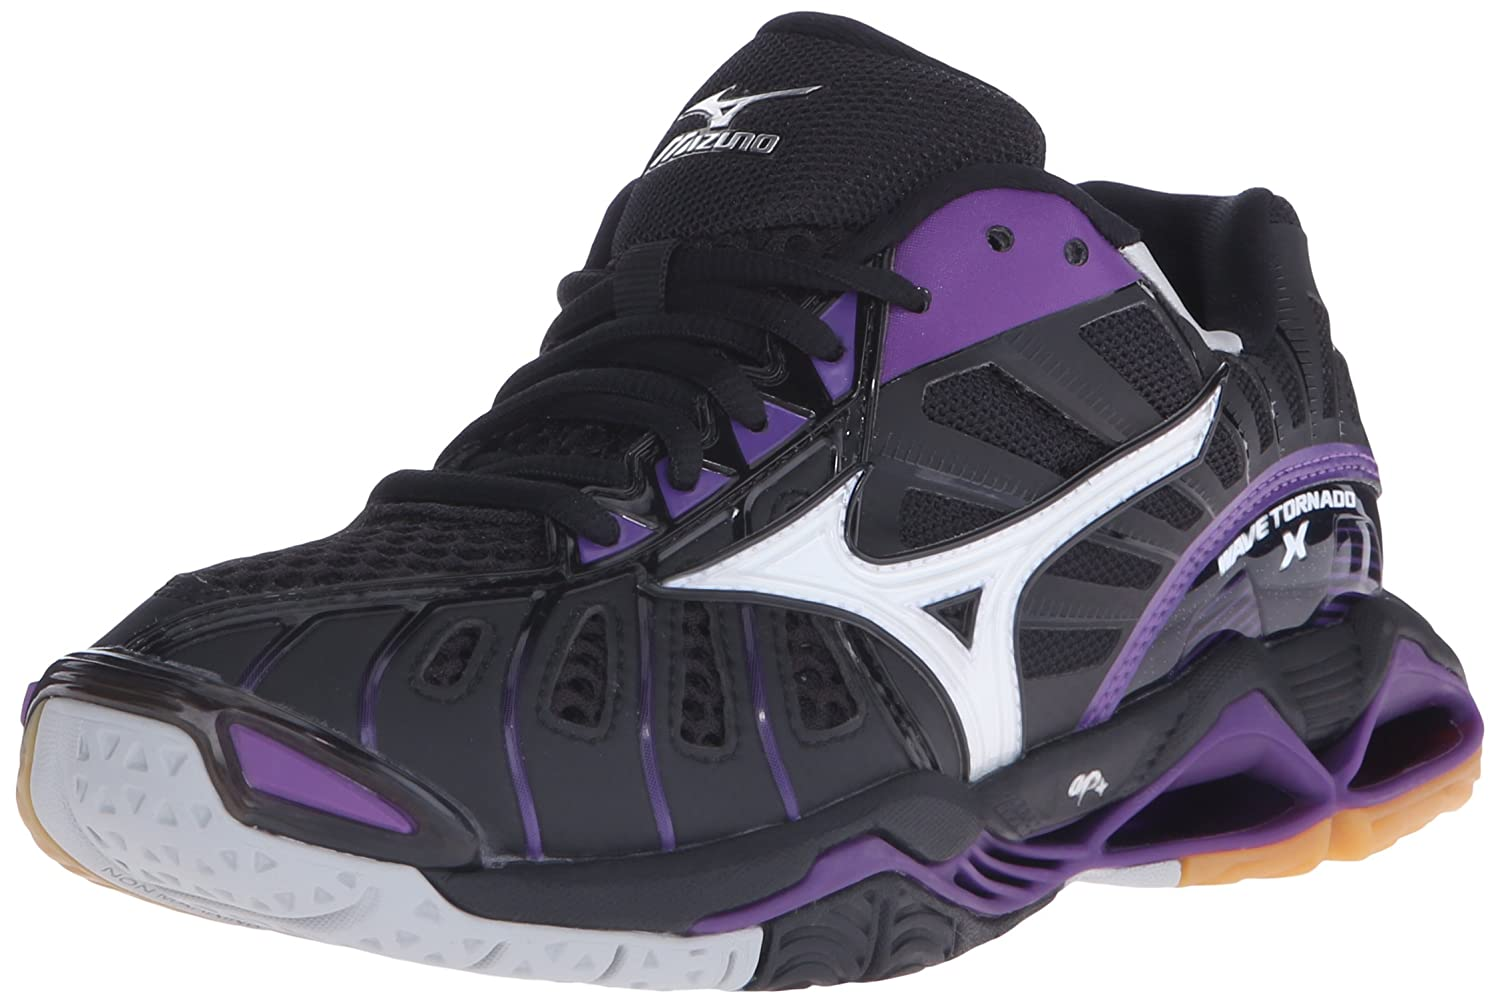 [ミズノ] Women's Wave Tornado X B01ABU3TW4 Black / White / Purple 7 M US 7 M US|Black / White / Purple